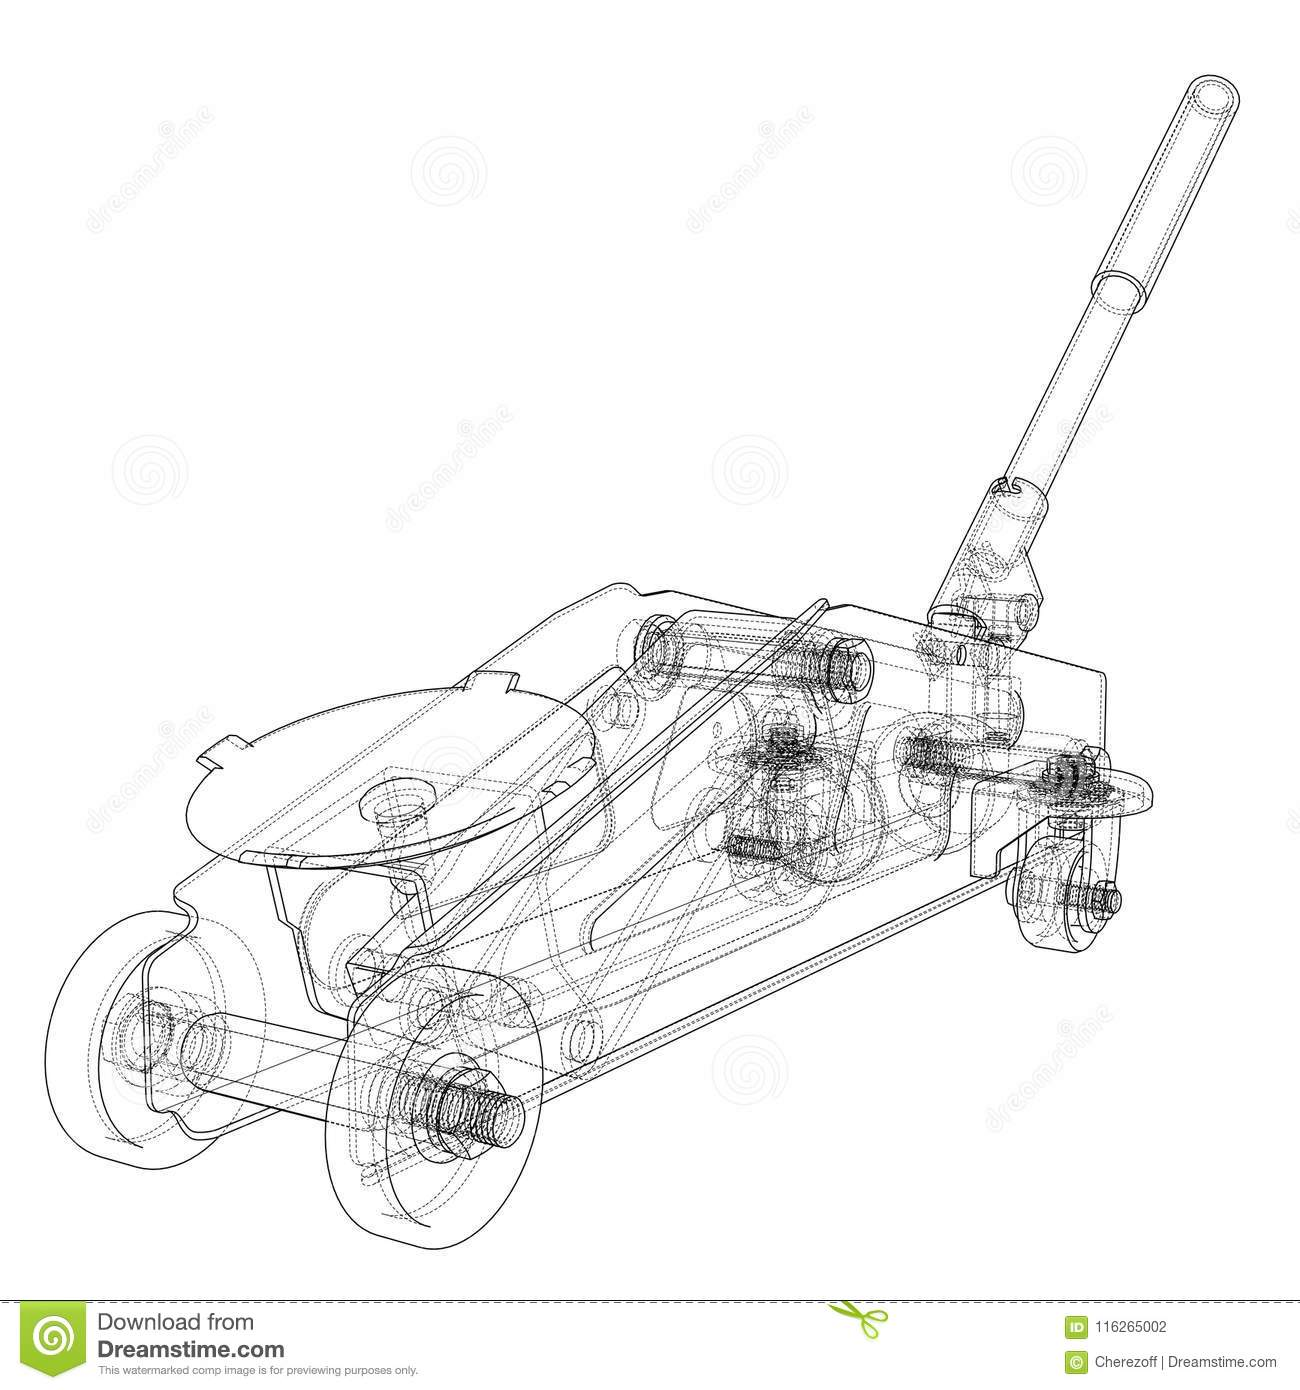 Hydraulic Floor Jack Outline Vector Stock Illustration Of Car Hydraulics Wiring Diagram Rendering 3d Wire Frame Style The Layers Visible And Invisible Lines Are Separated